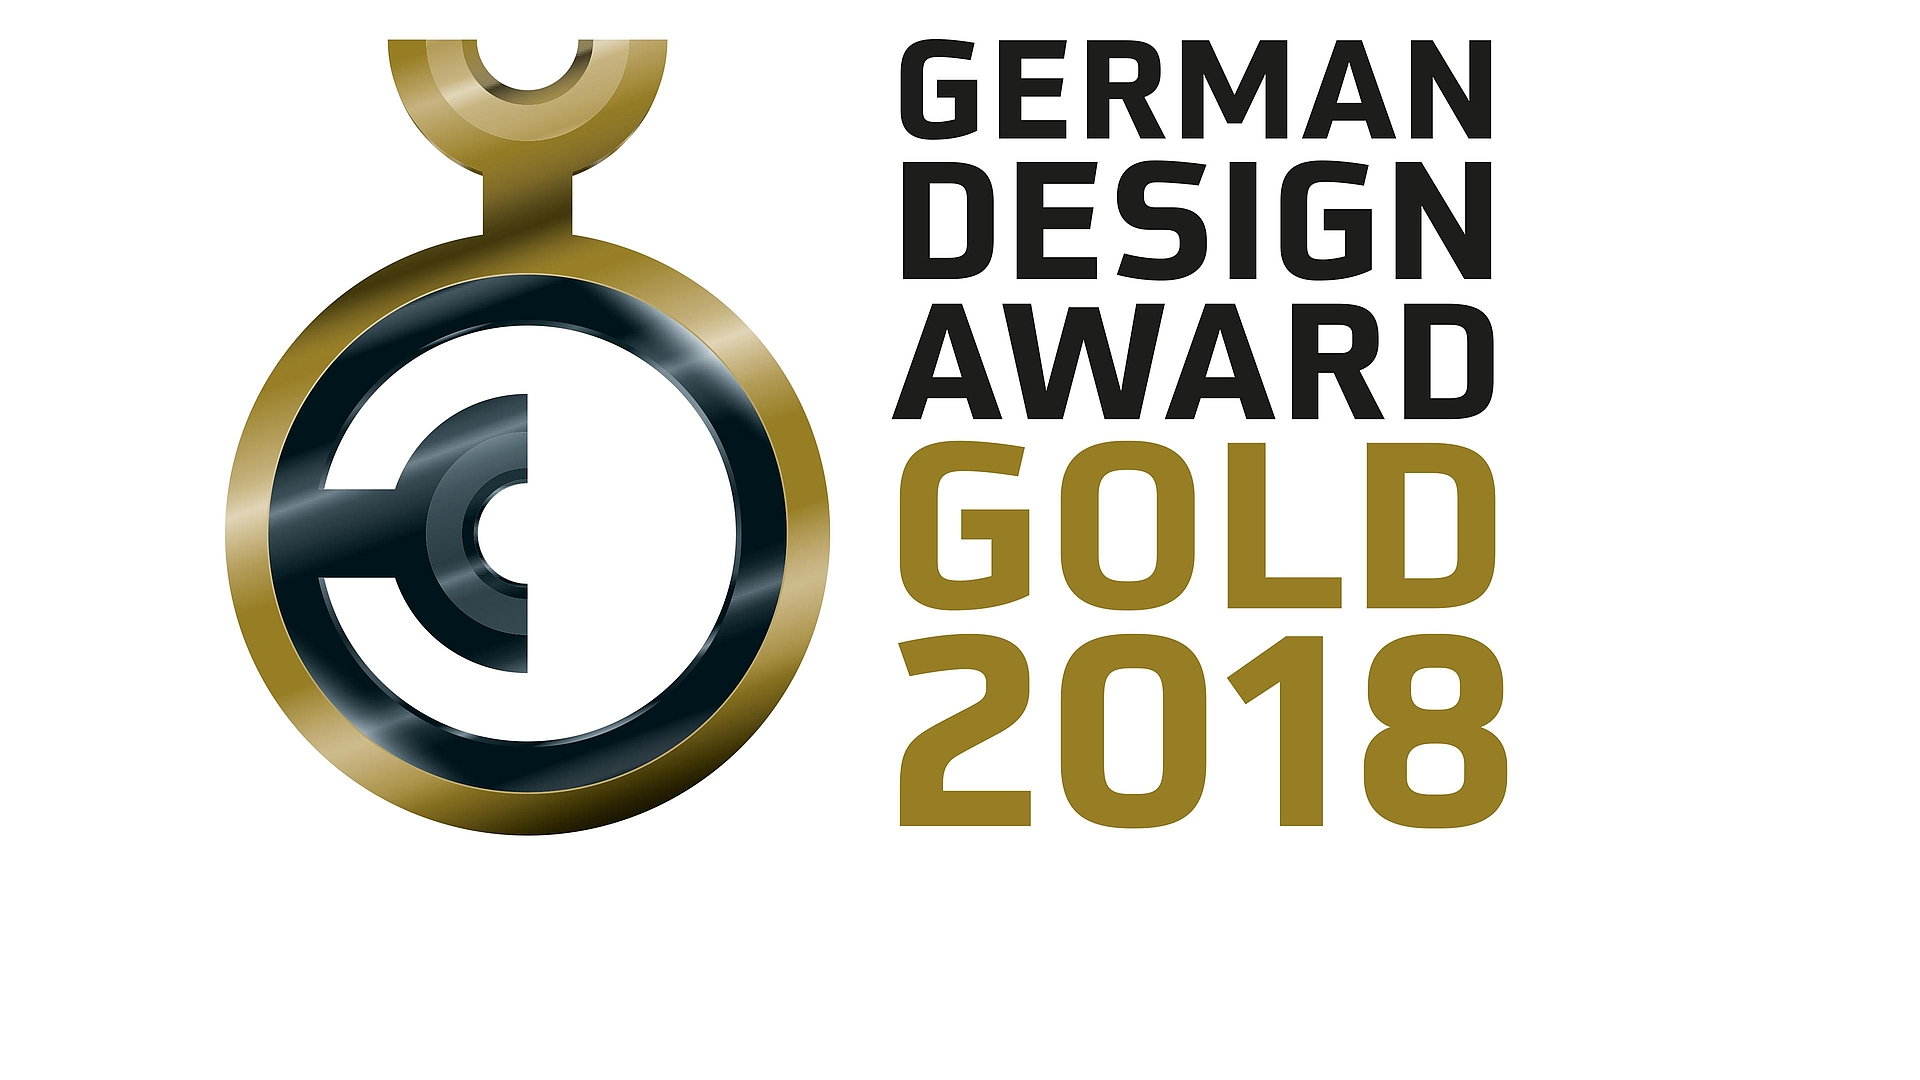 bora-com_awards_3840x2160px_0018_German-Design-Award_2018.jpg